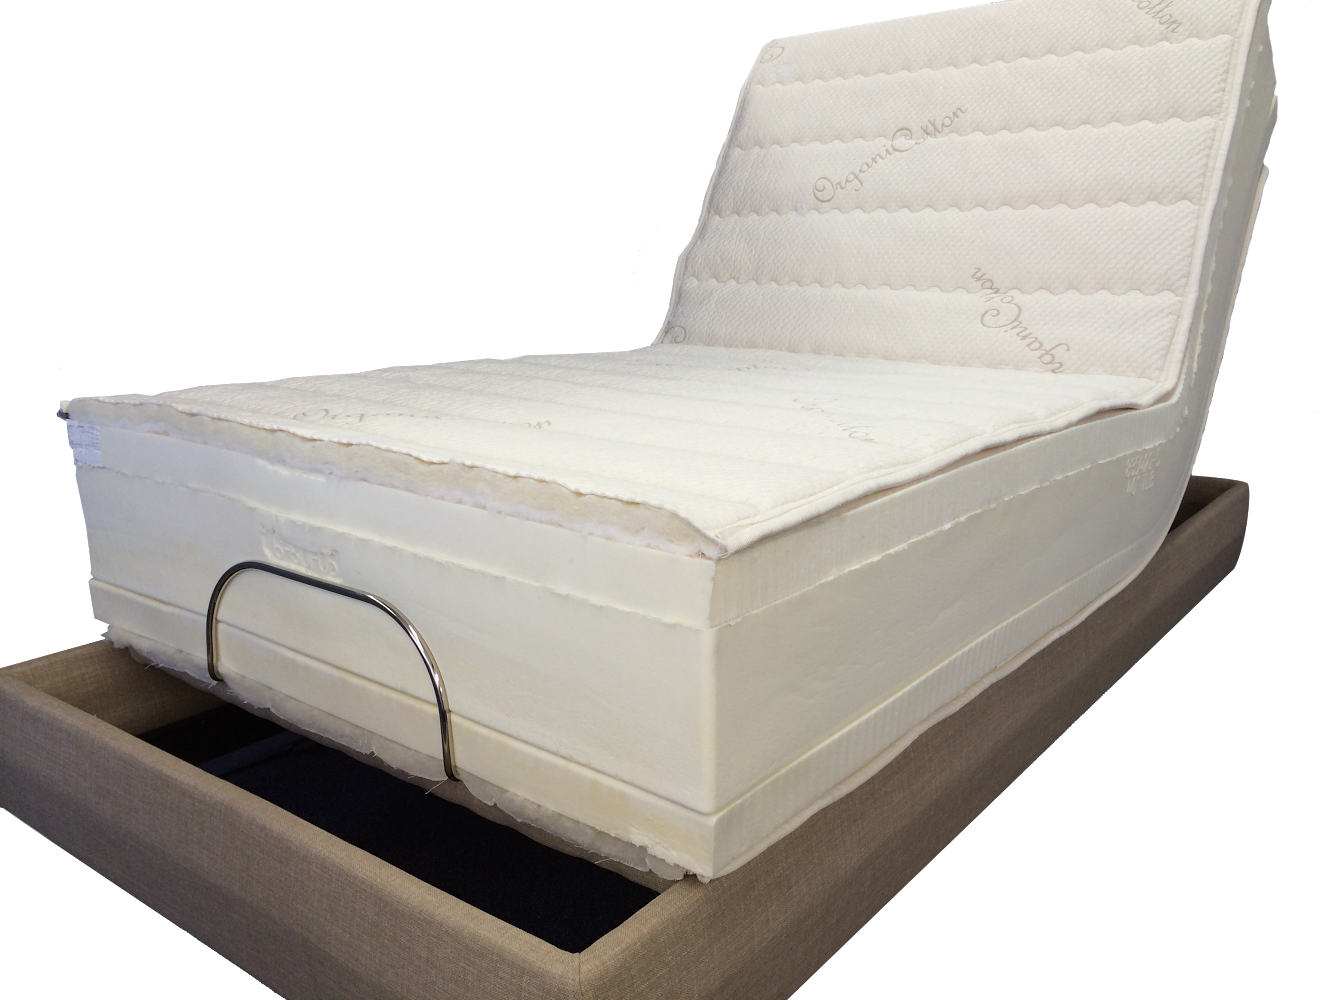 Latexpedic LA Los Angeles Latex Mattress image 13